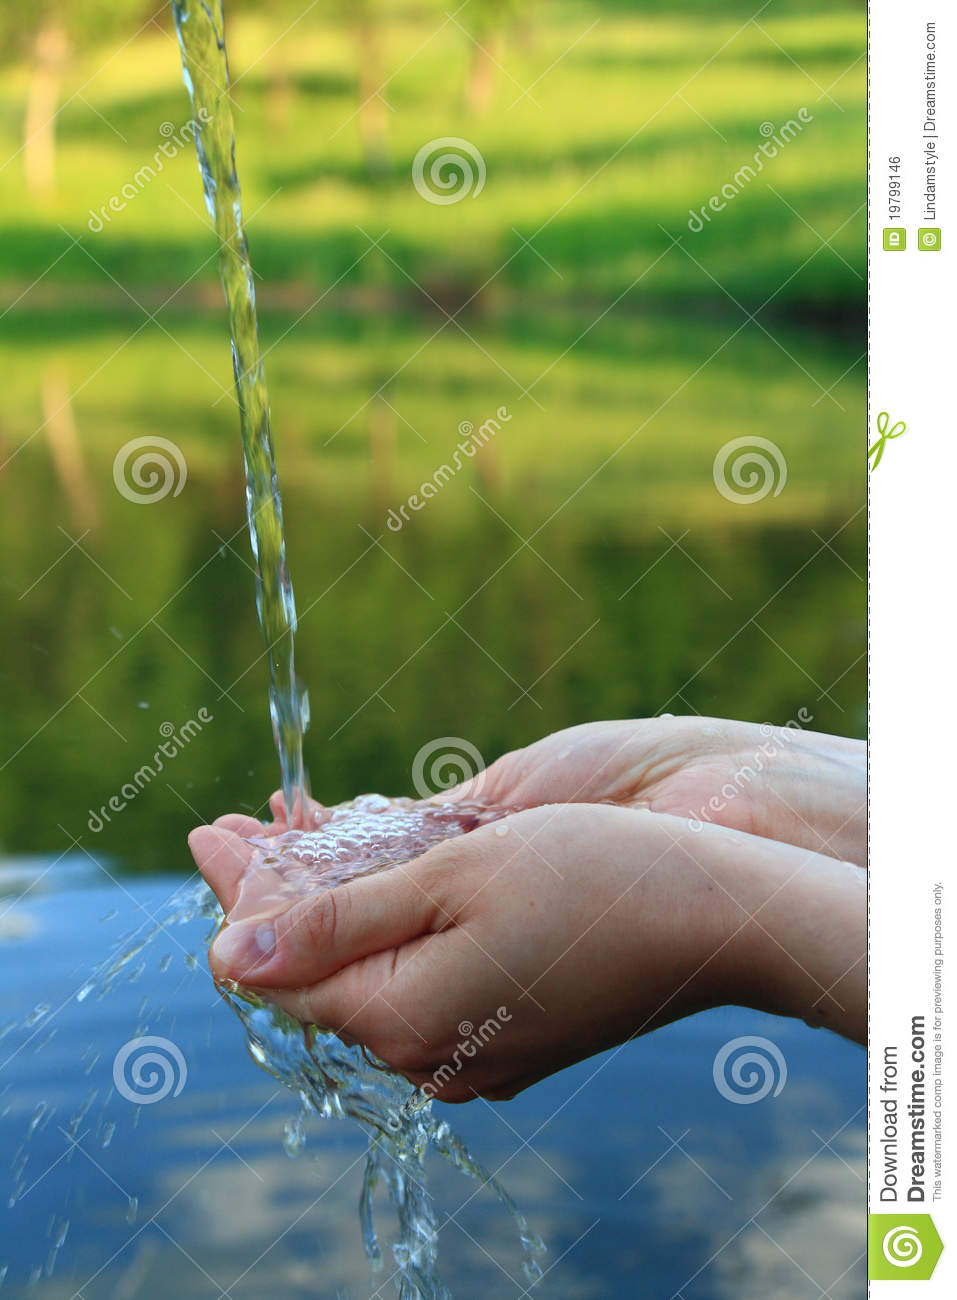 Hands in clear water against mountain lake